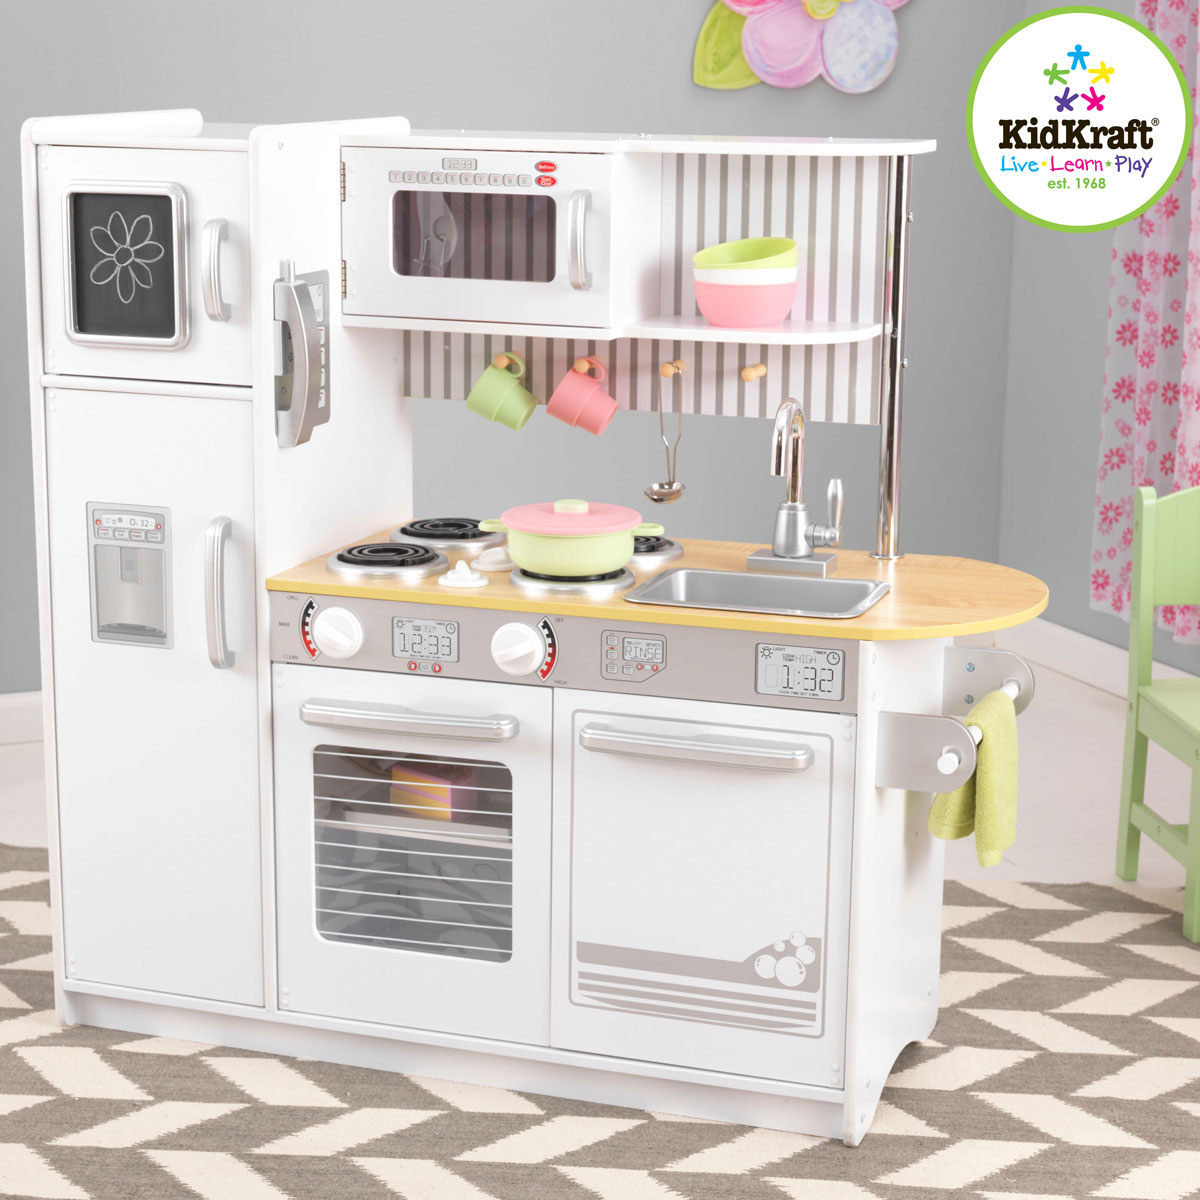 Kidkraft Uptown White Kitchen 53335